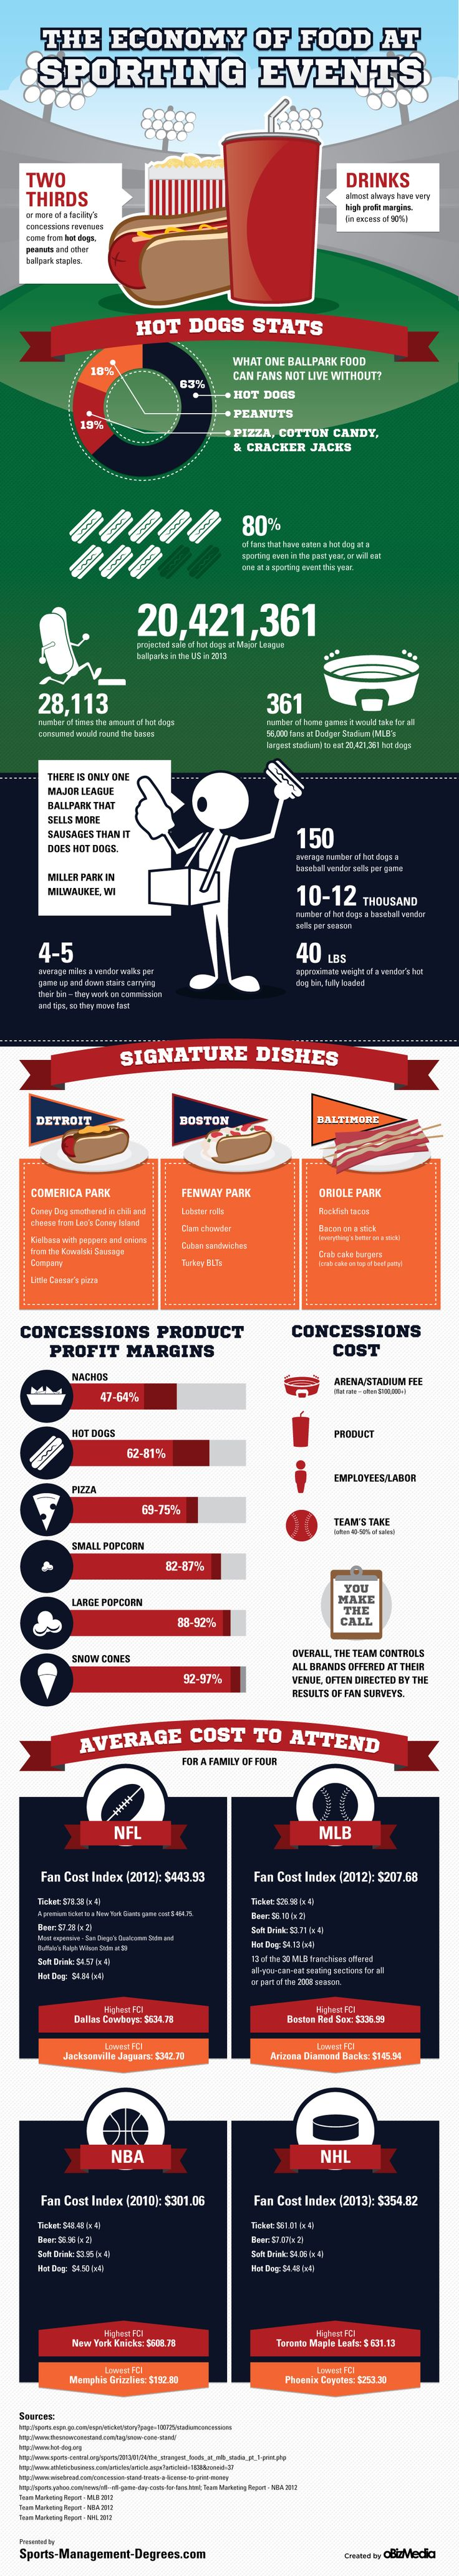 Staples such as hot dogs, peanuts, and beer can still be found at Sporting Events, right along side lobster rolls and corn beef sandwiches - all for a steep price! With stadium fees and the team's take of the profits, the high price of concession stand food at sporting events is the product of complicated negotiations